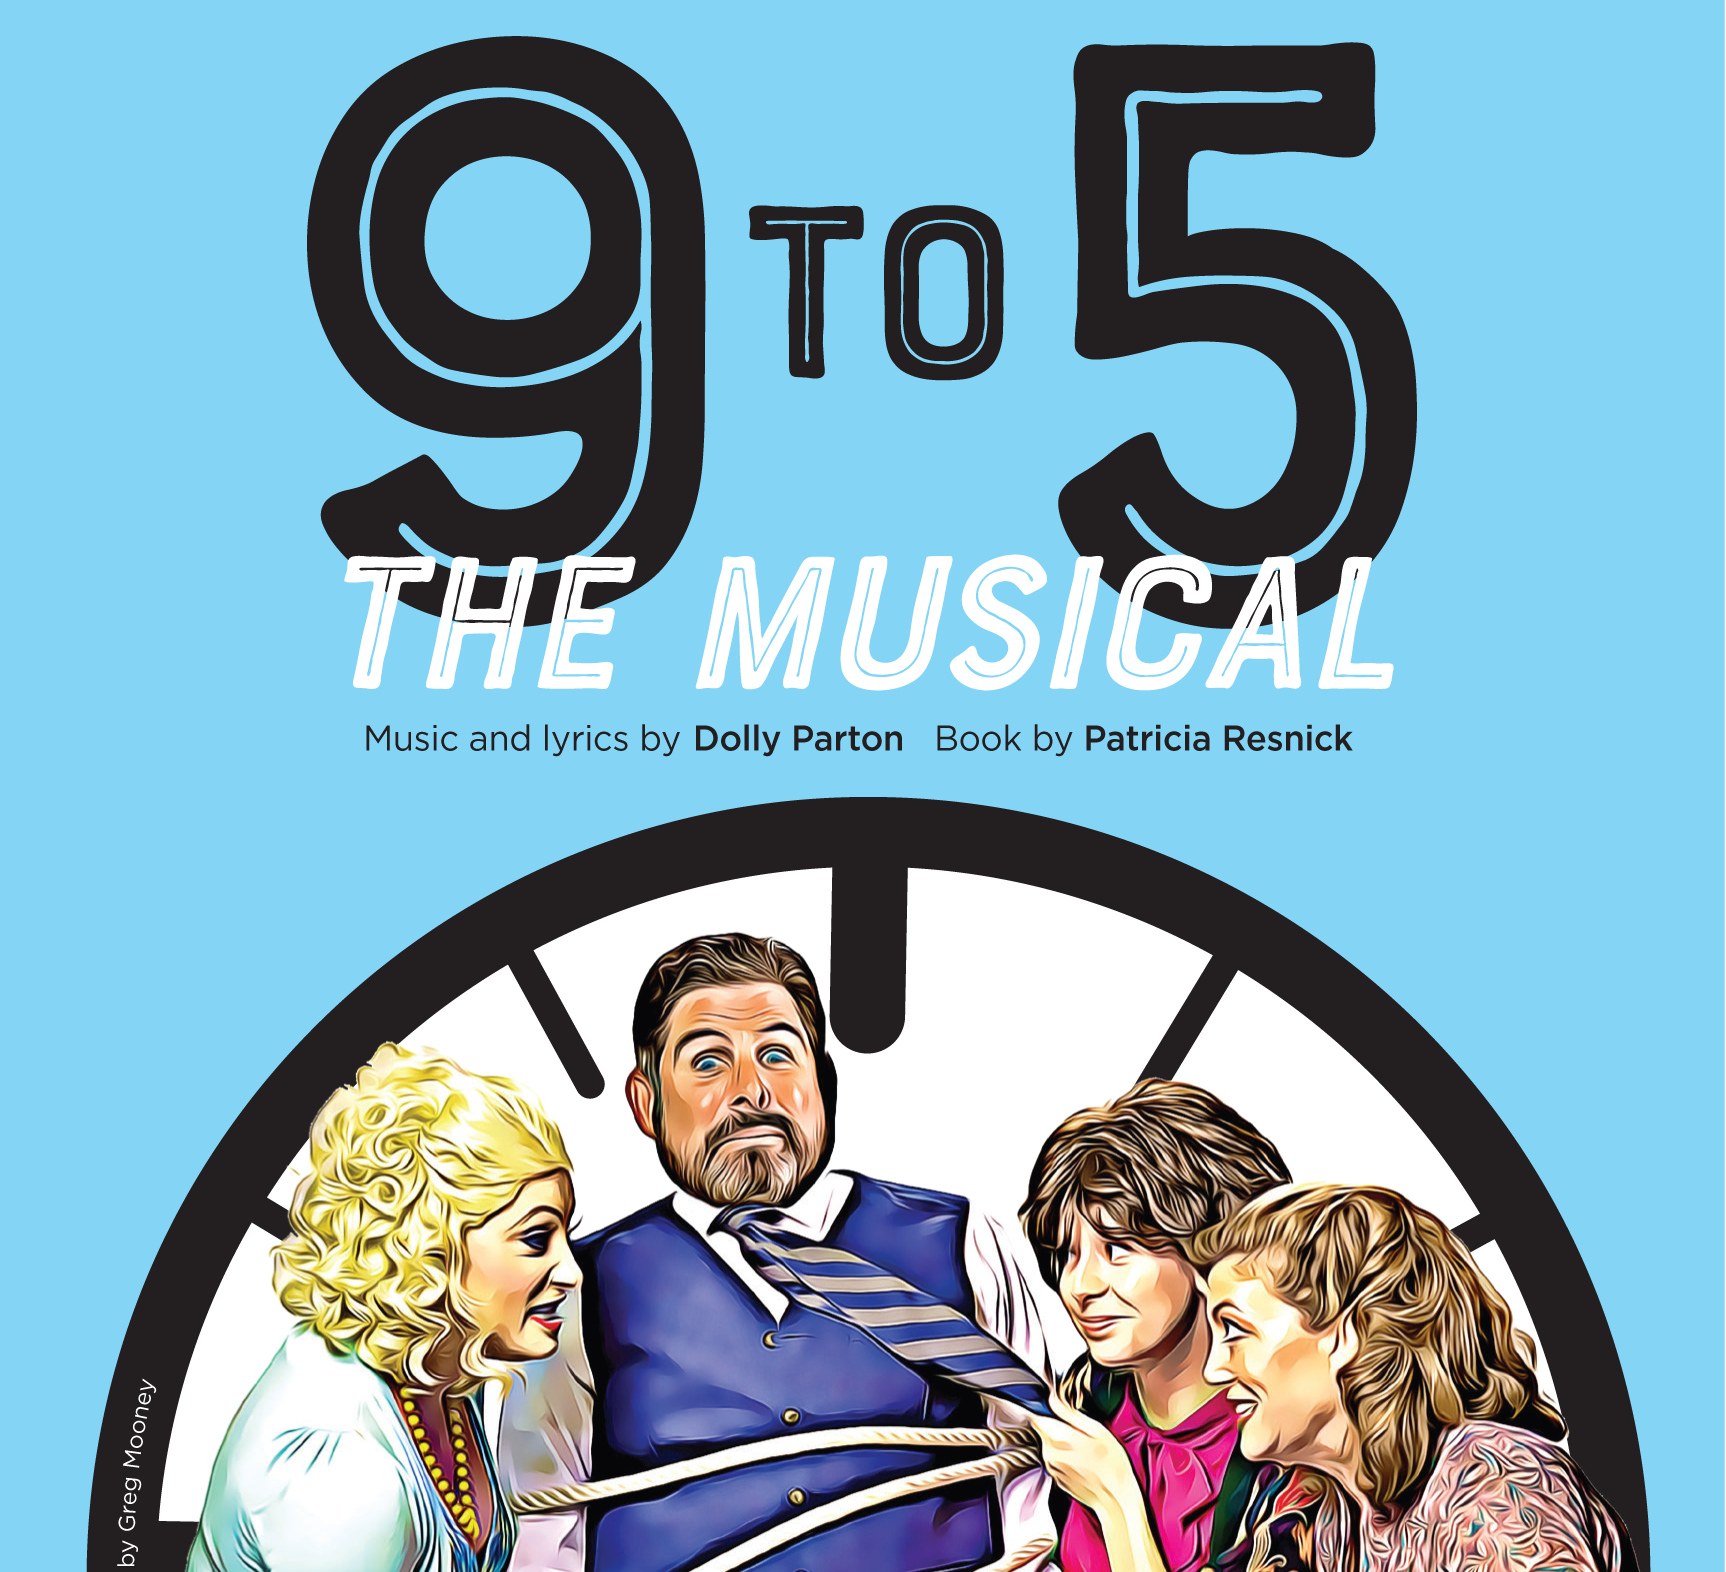 9to5 postcard crop